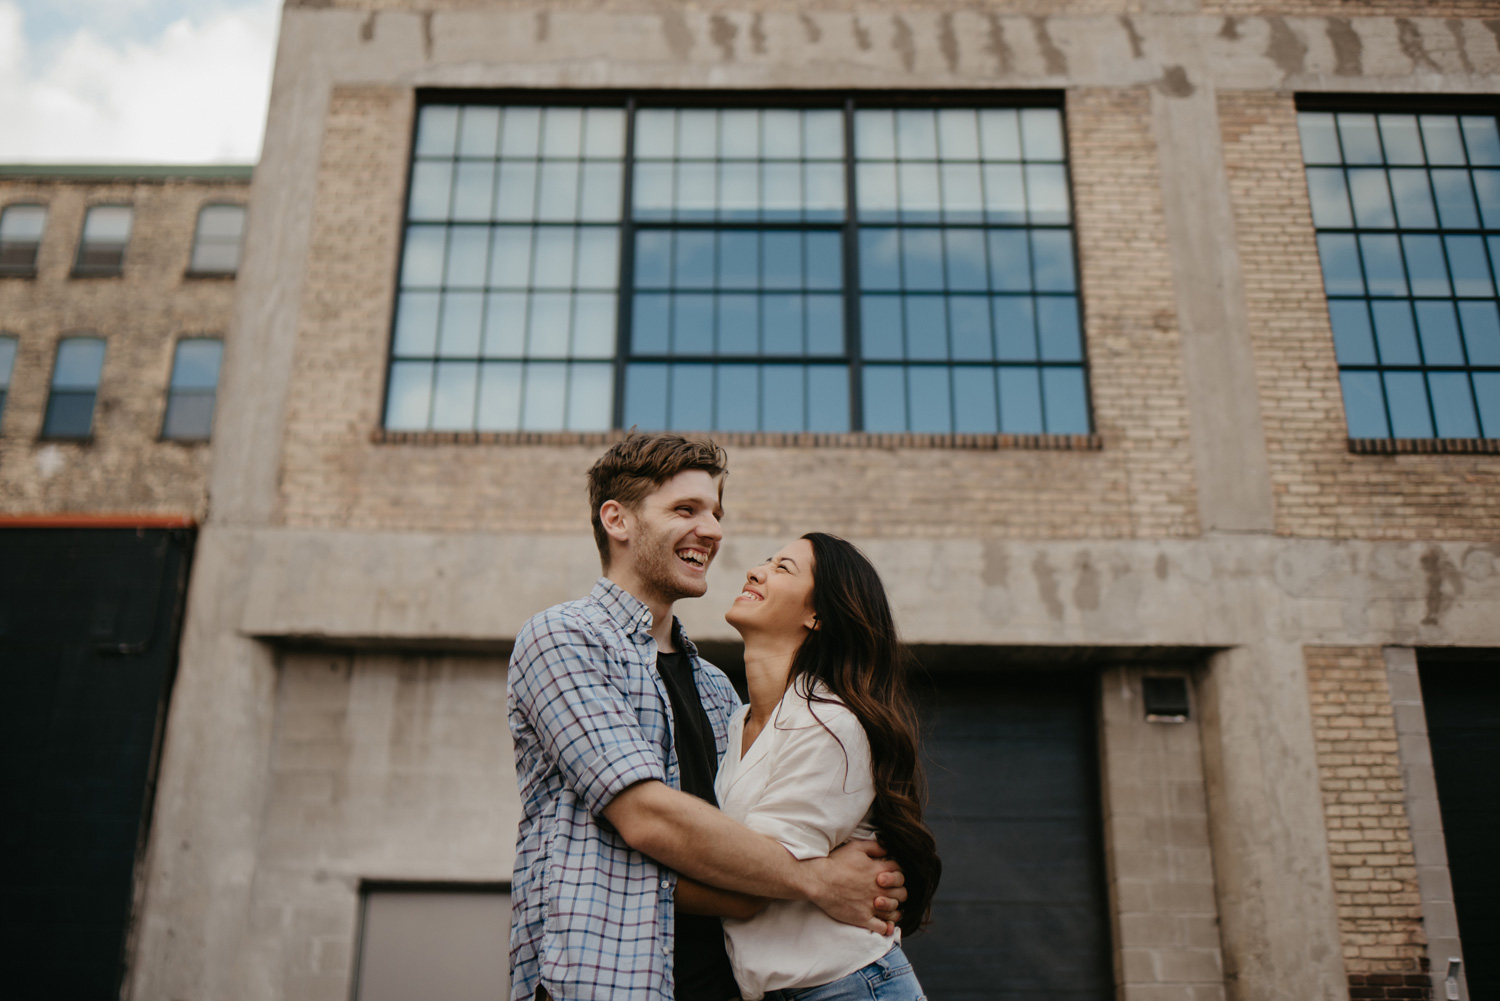 Man and woman cuddling in front of large urban warehouse with glass windows